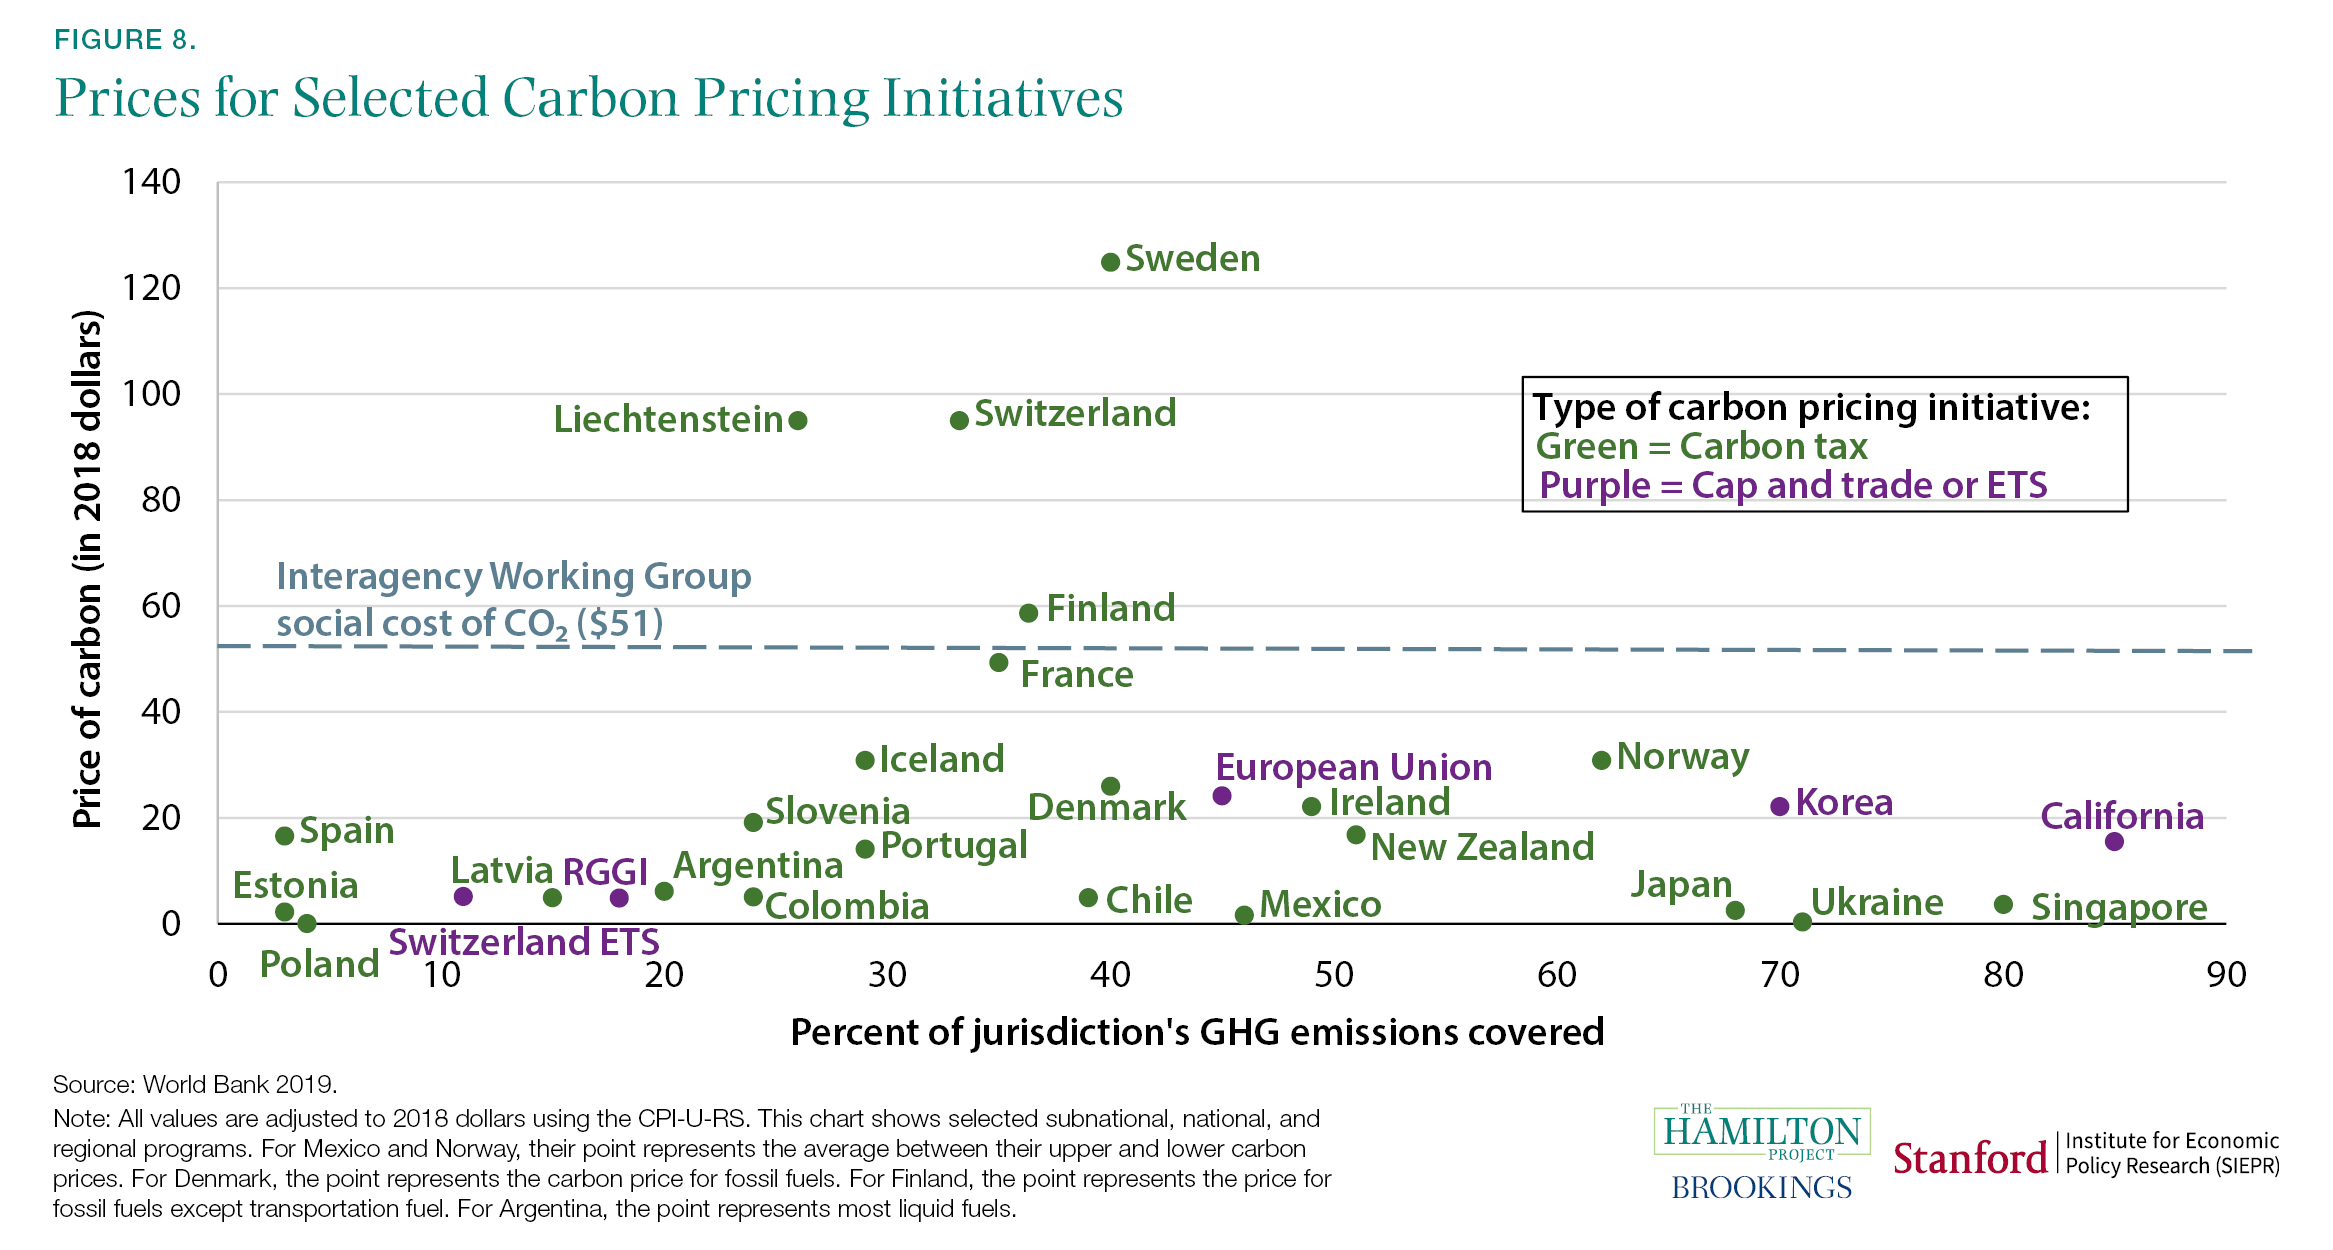 Prices for Selected Carbon Pricing Initiatives